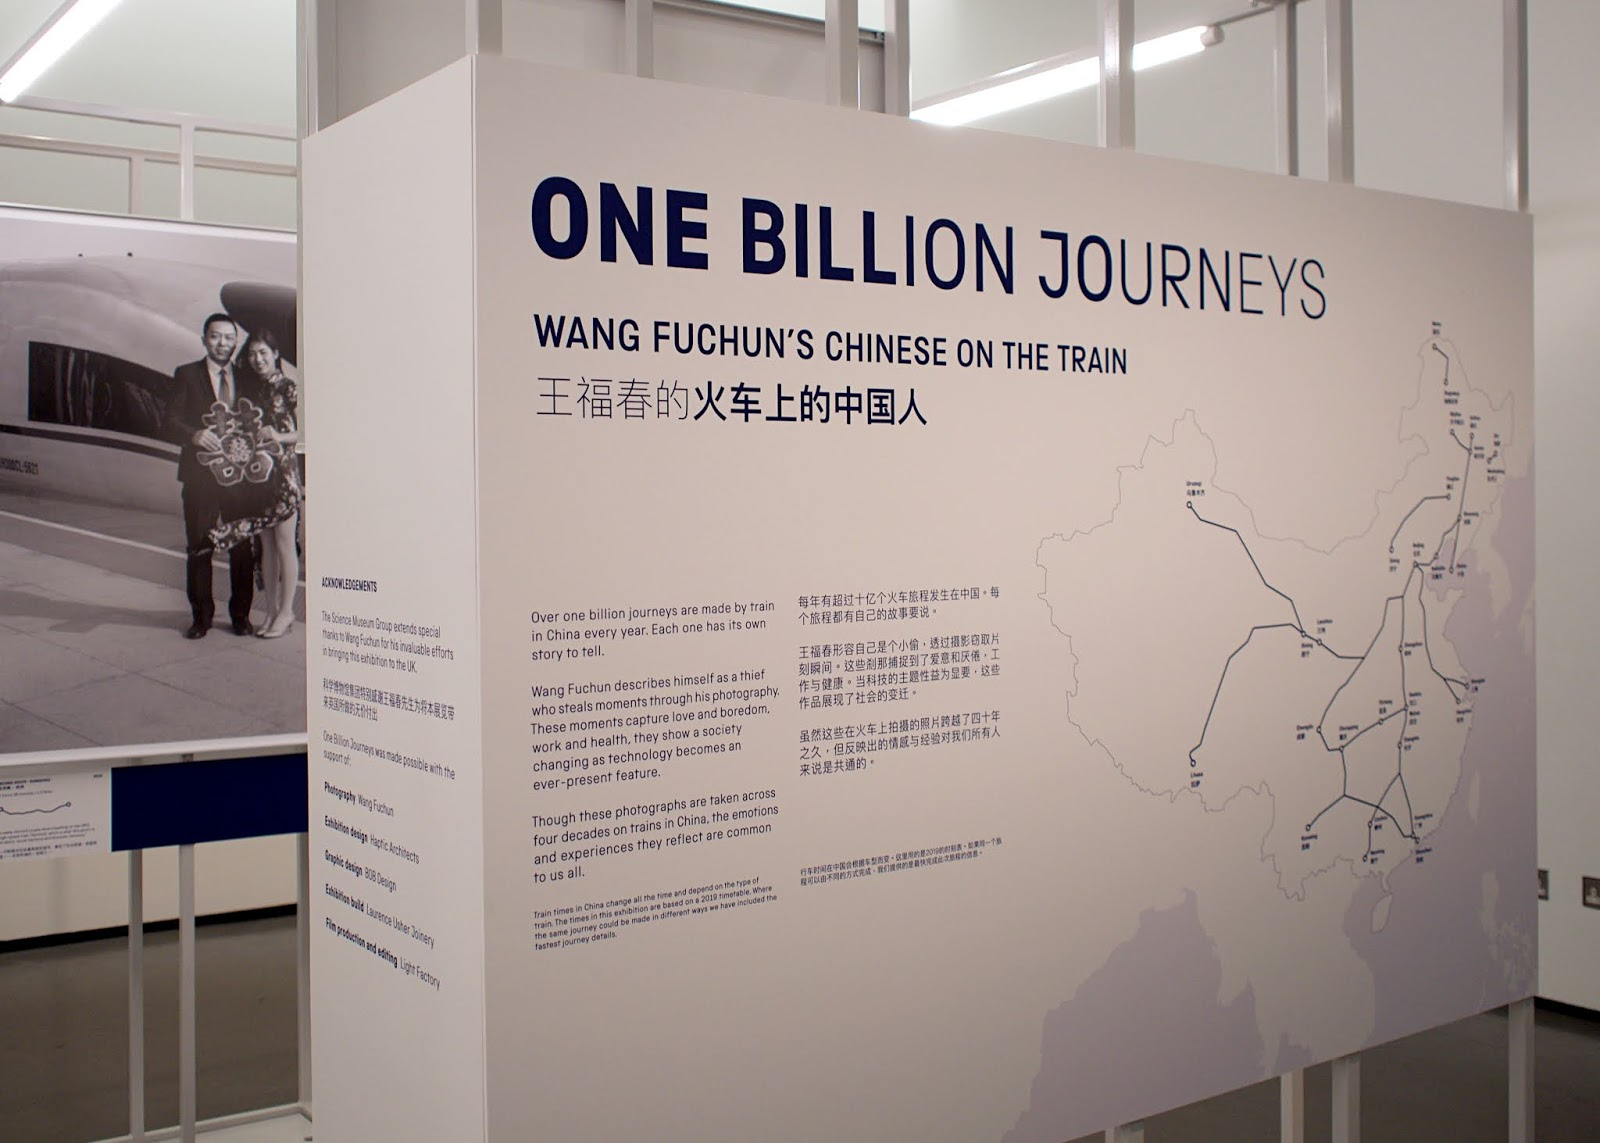 wang fuchuns one billion journeys